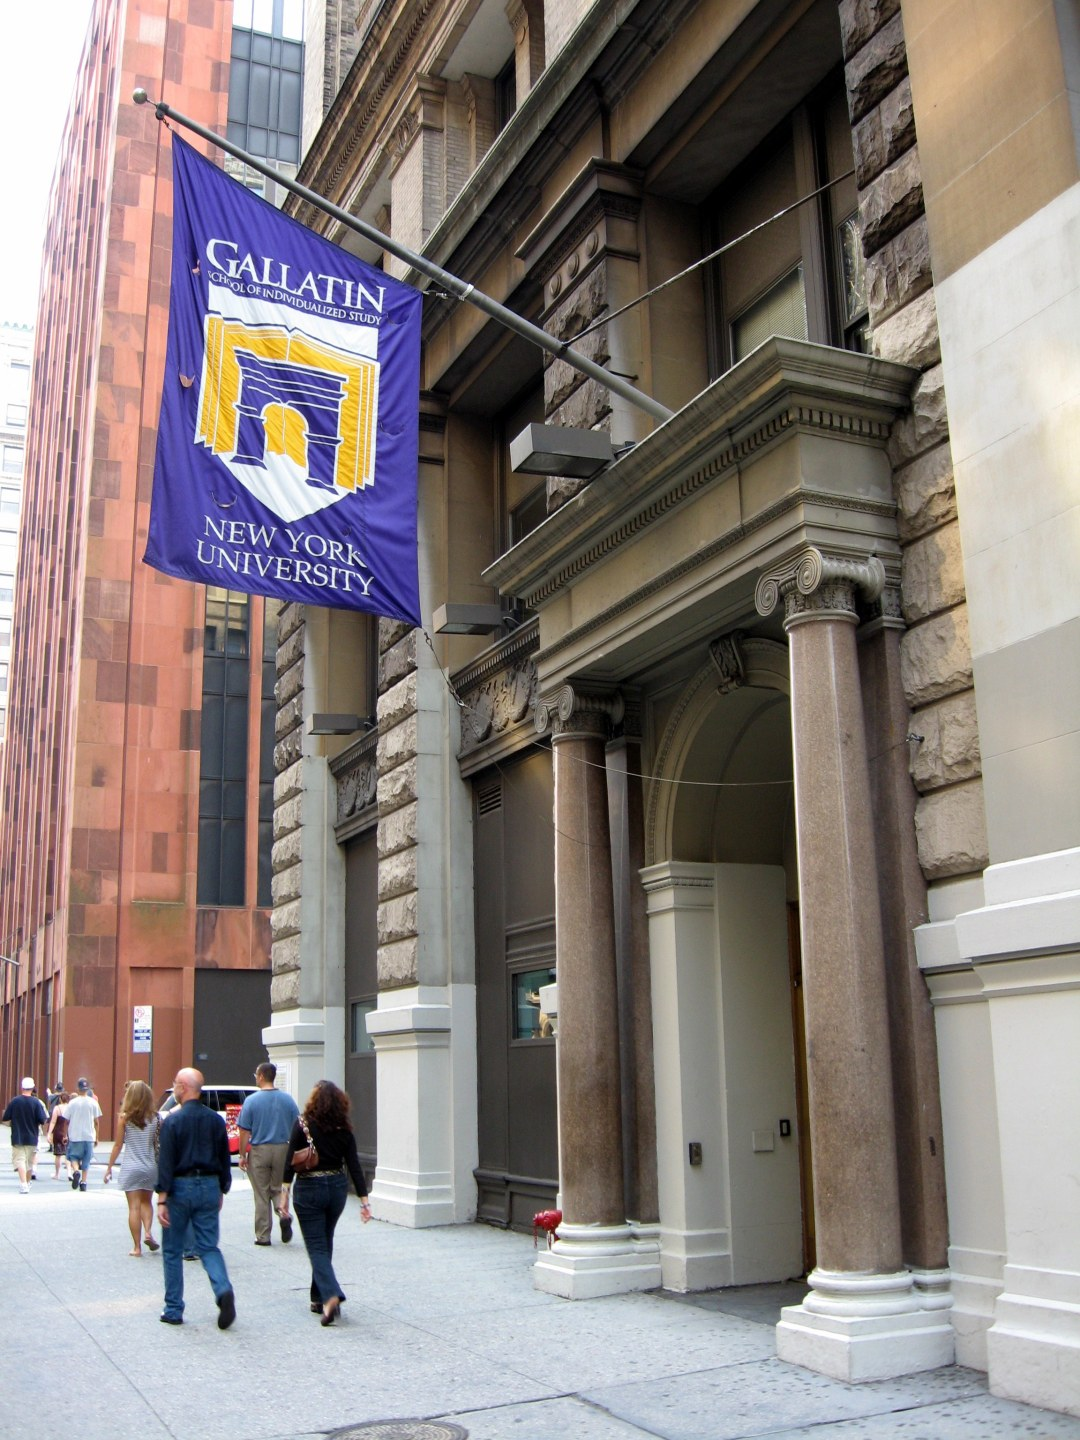 The entrance to the Gallatin School of Individ...